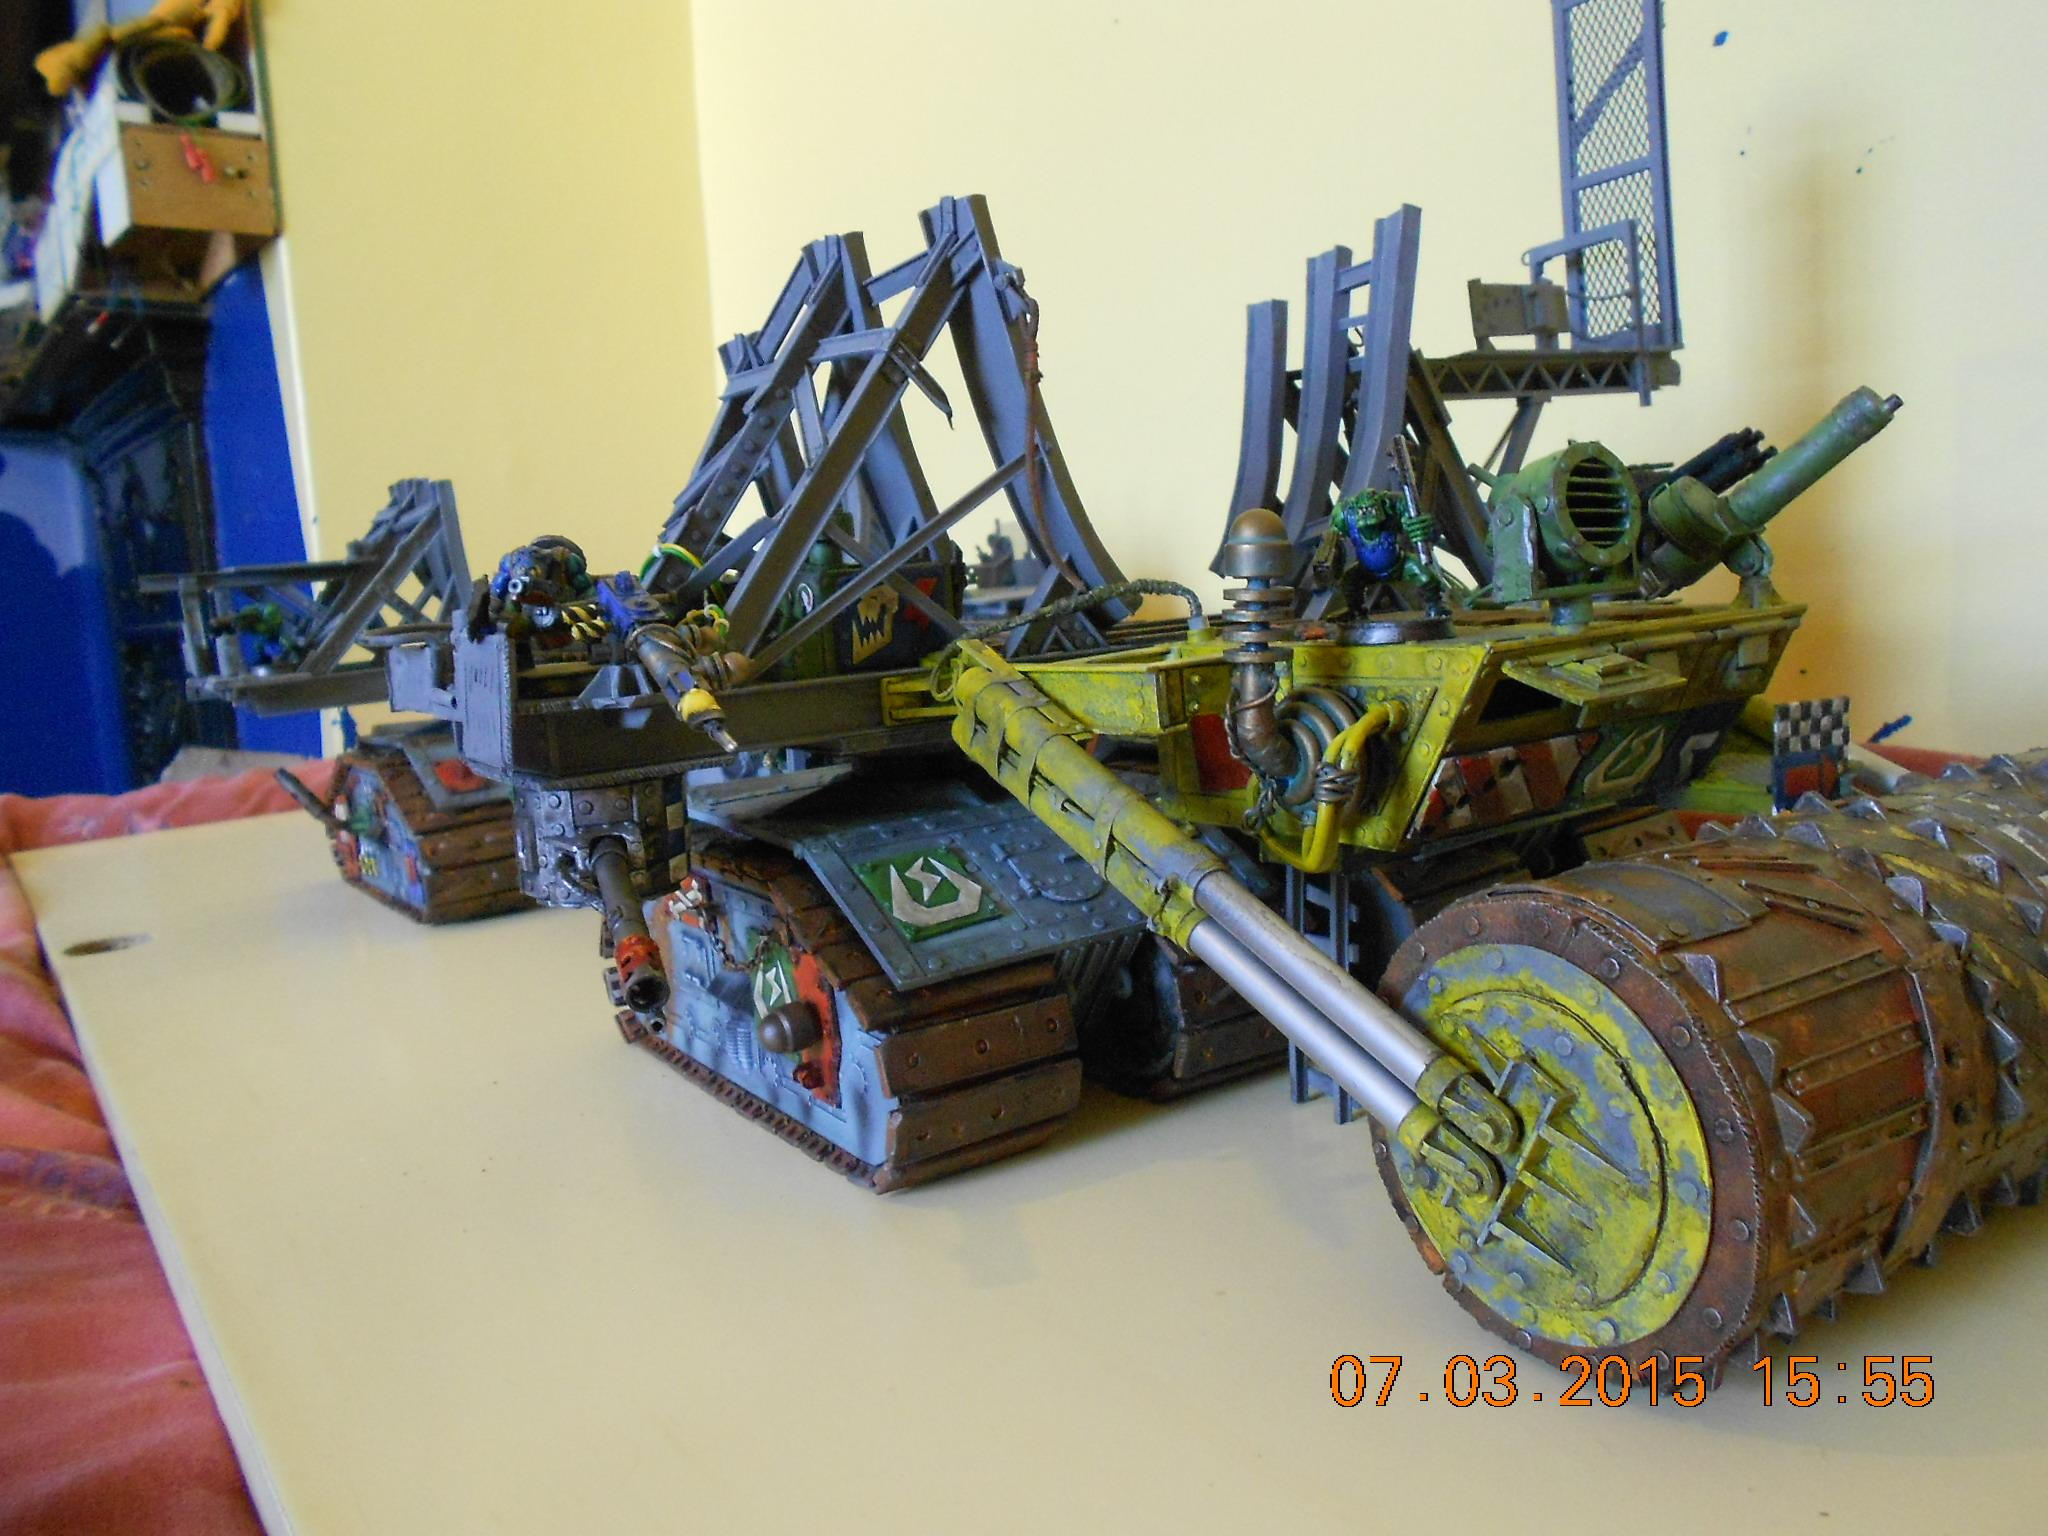 Cradle, Death Roller, Dreadnought, Track Unit, Warship